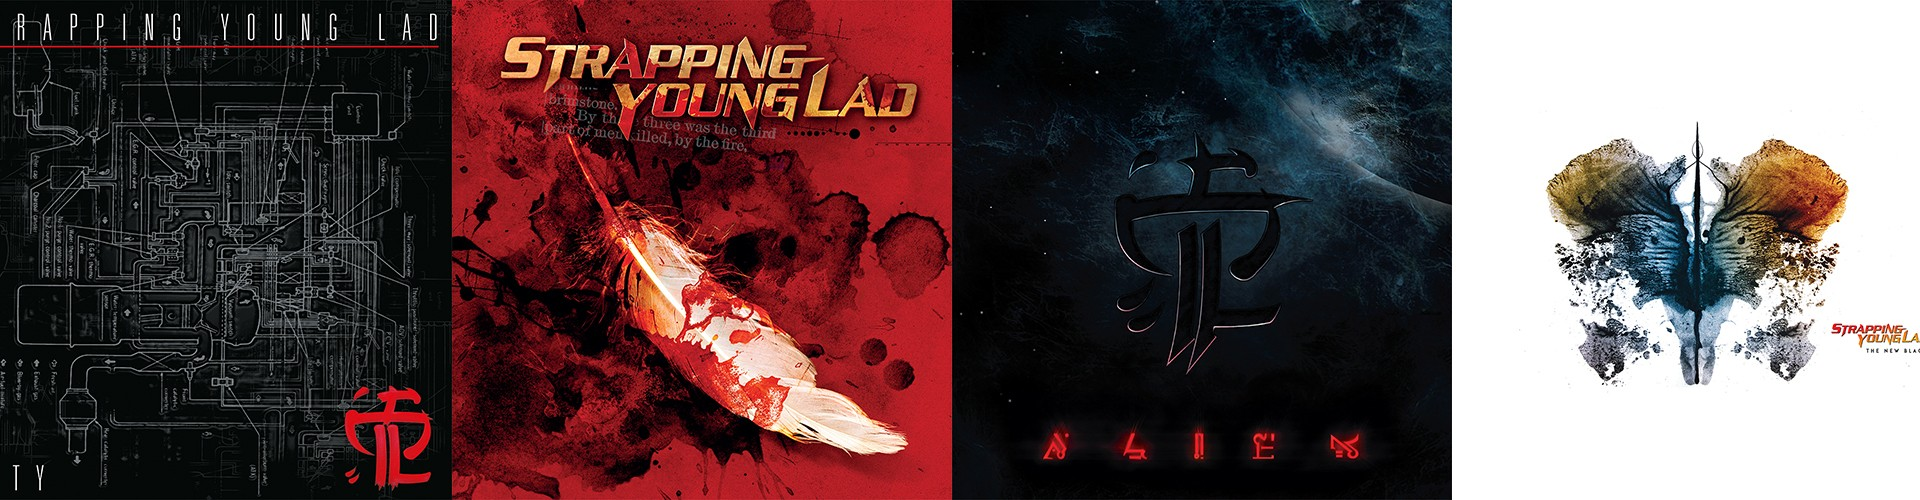 Strapping Young Lad represses